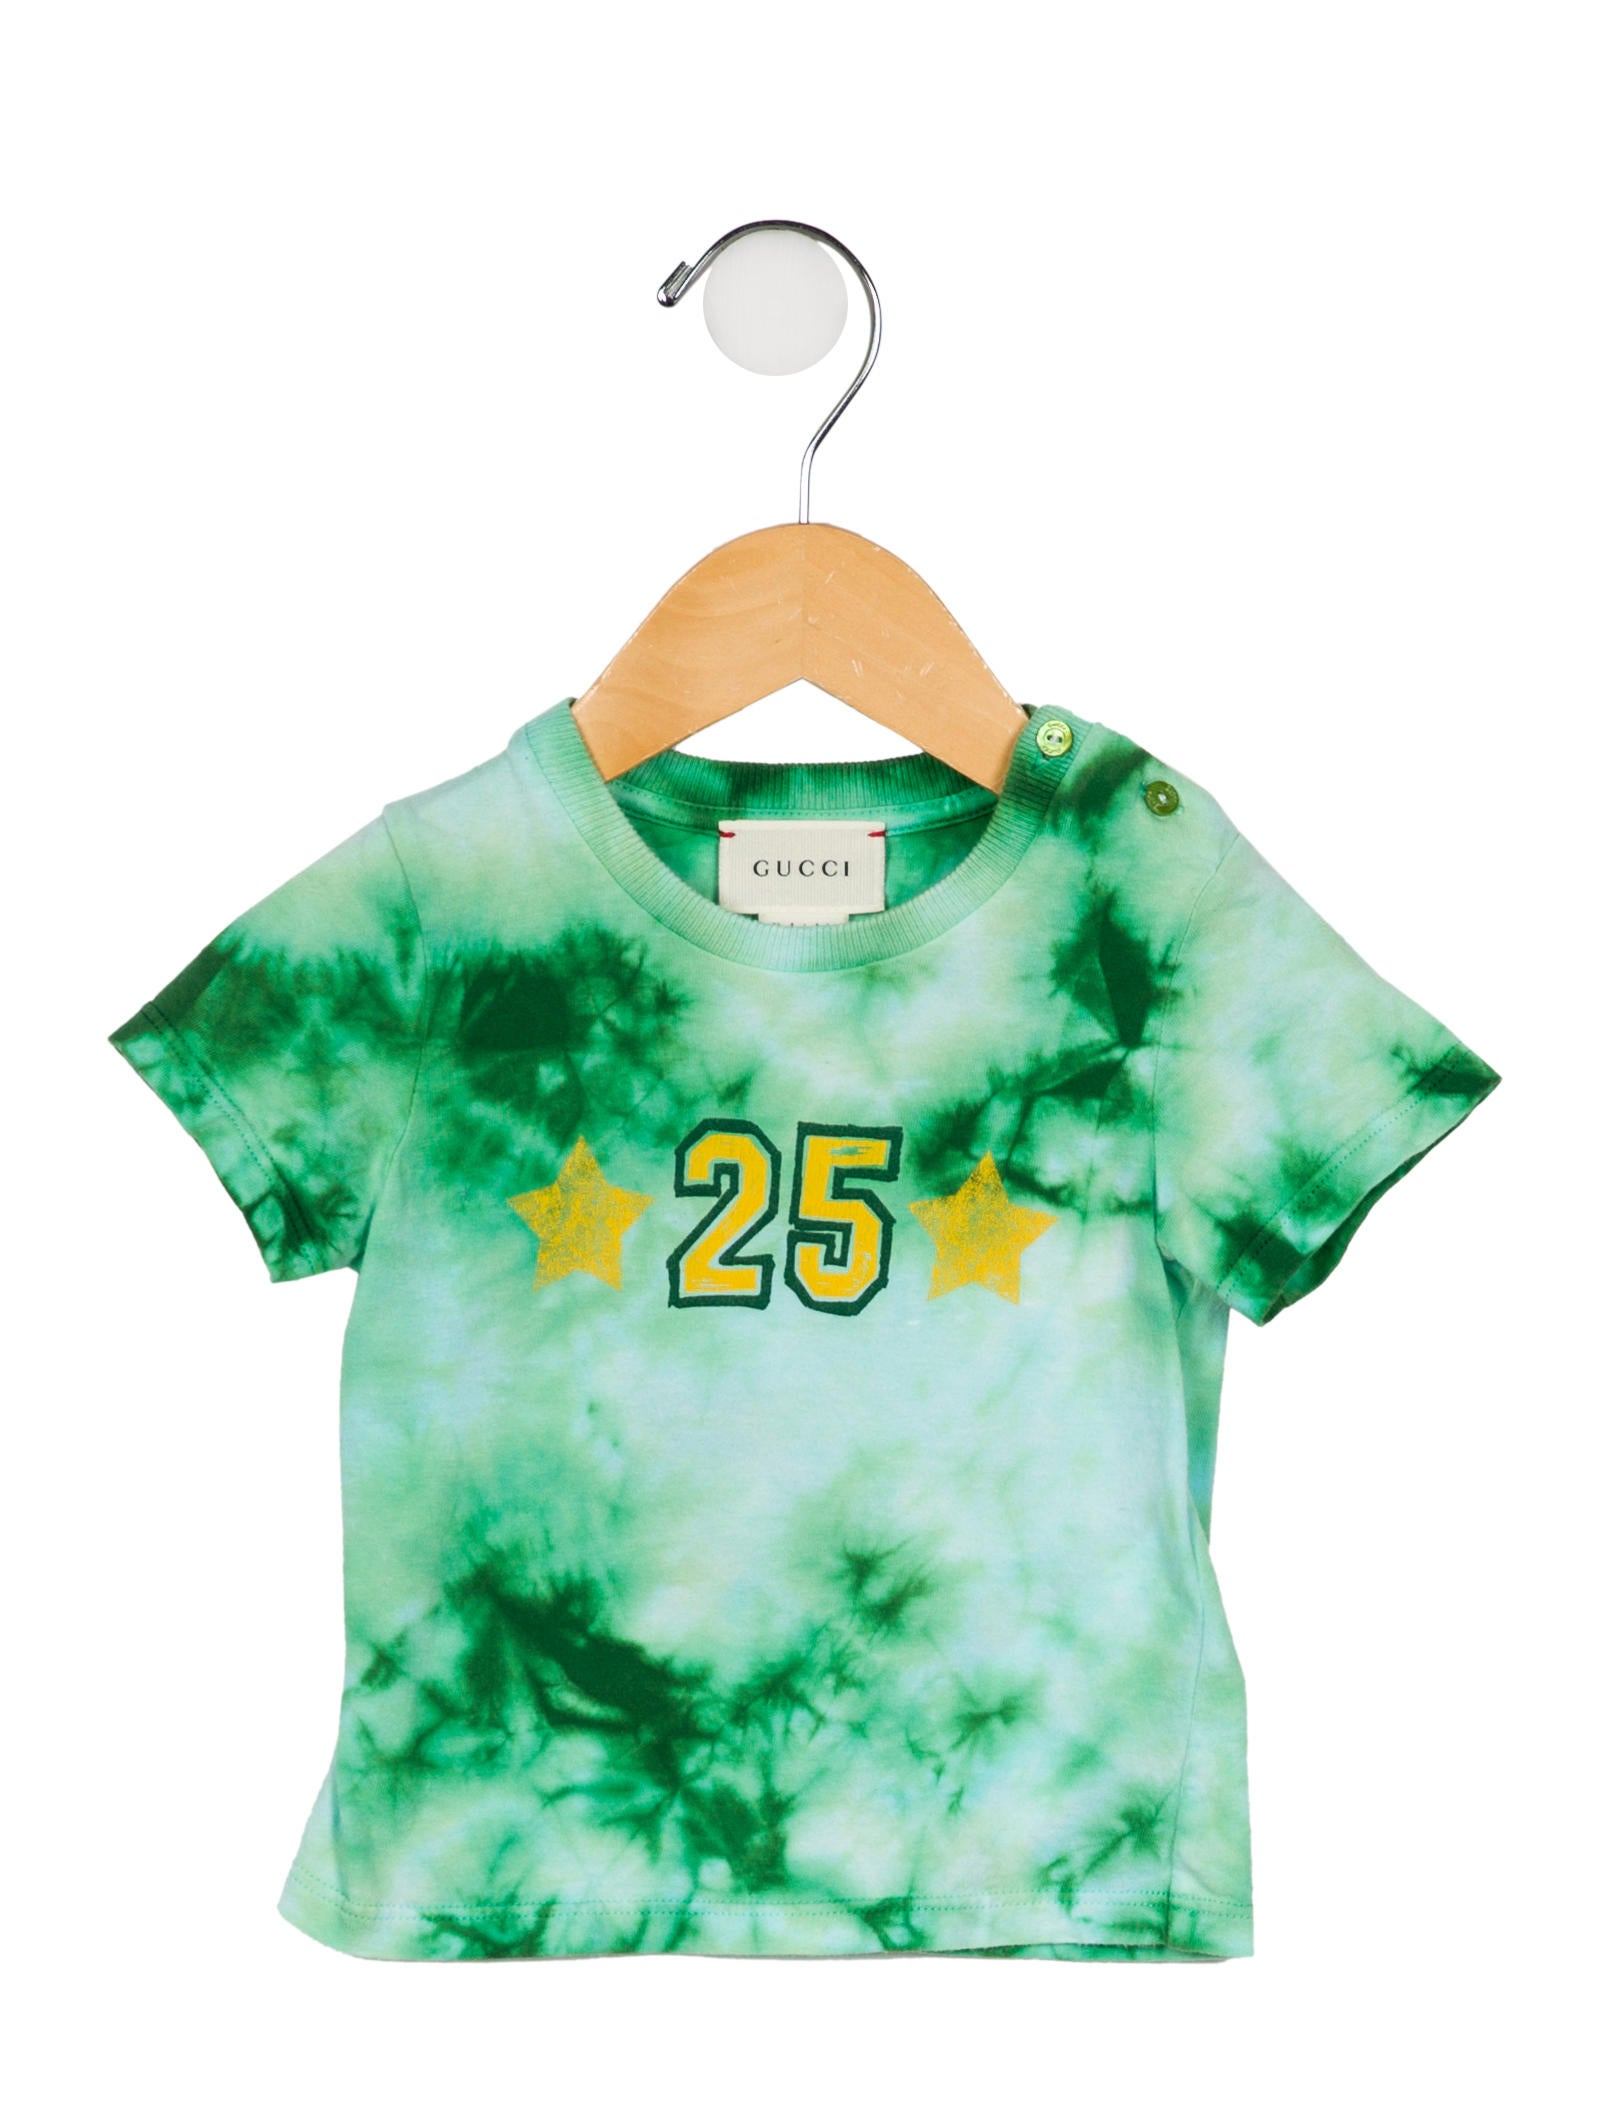 1805c363358 Gucci Boys  Tie-Dye T-Shirt - Boys - GUC283075